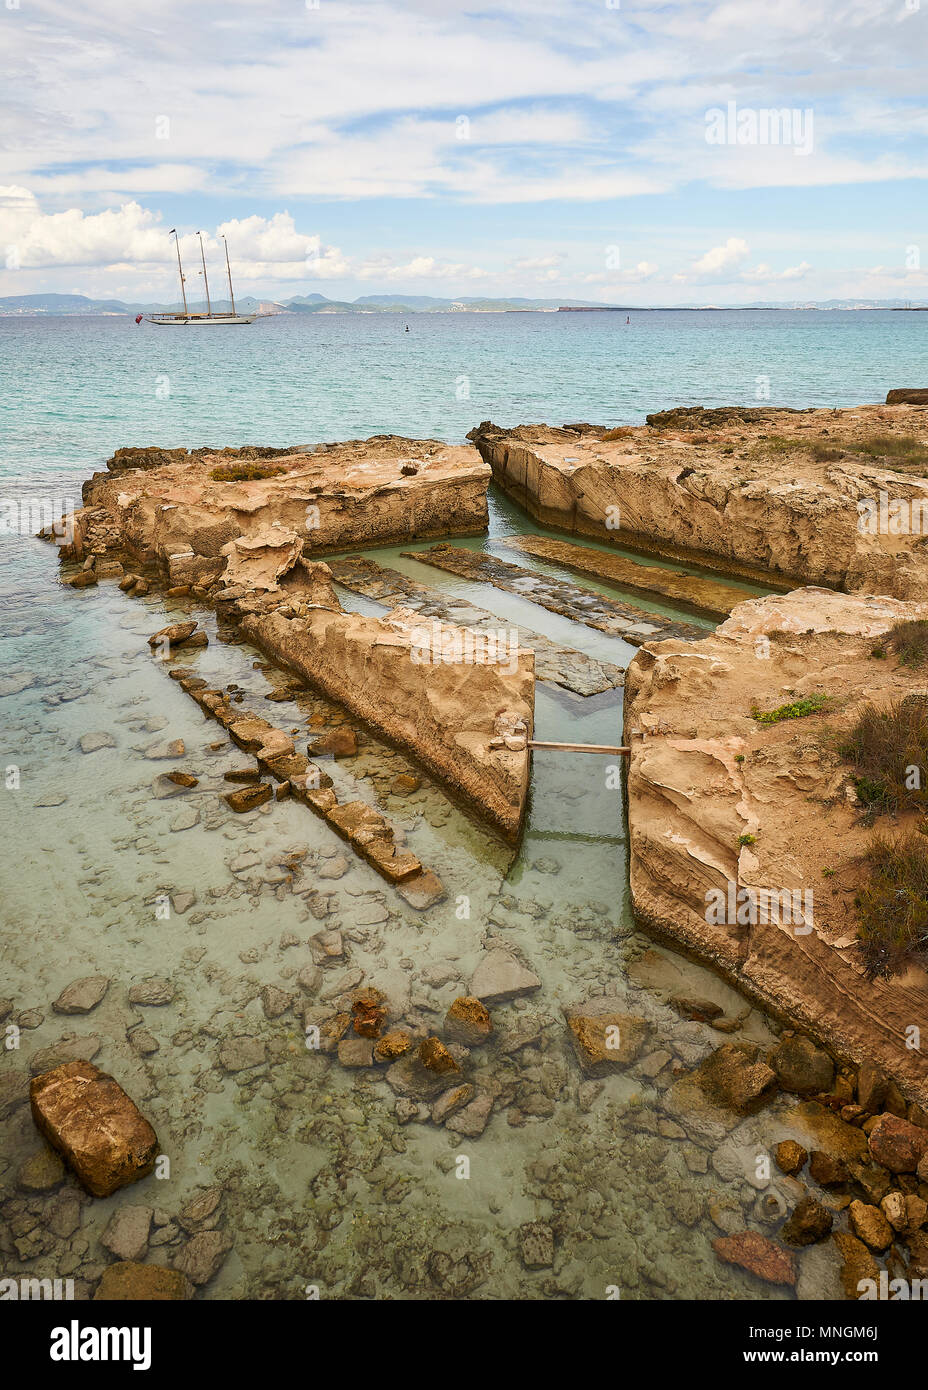 View of the vivarium built in the entrance of Sa Séquia water channel with a classic sailboat with Red Ensign flag (Formentera,Balearic Islands,Spain) - Stock Image